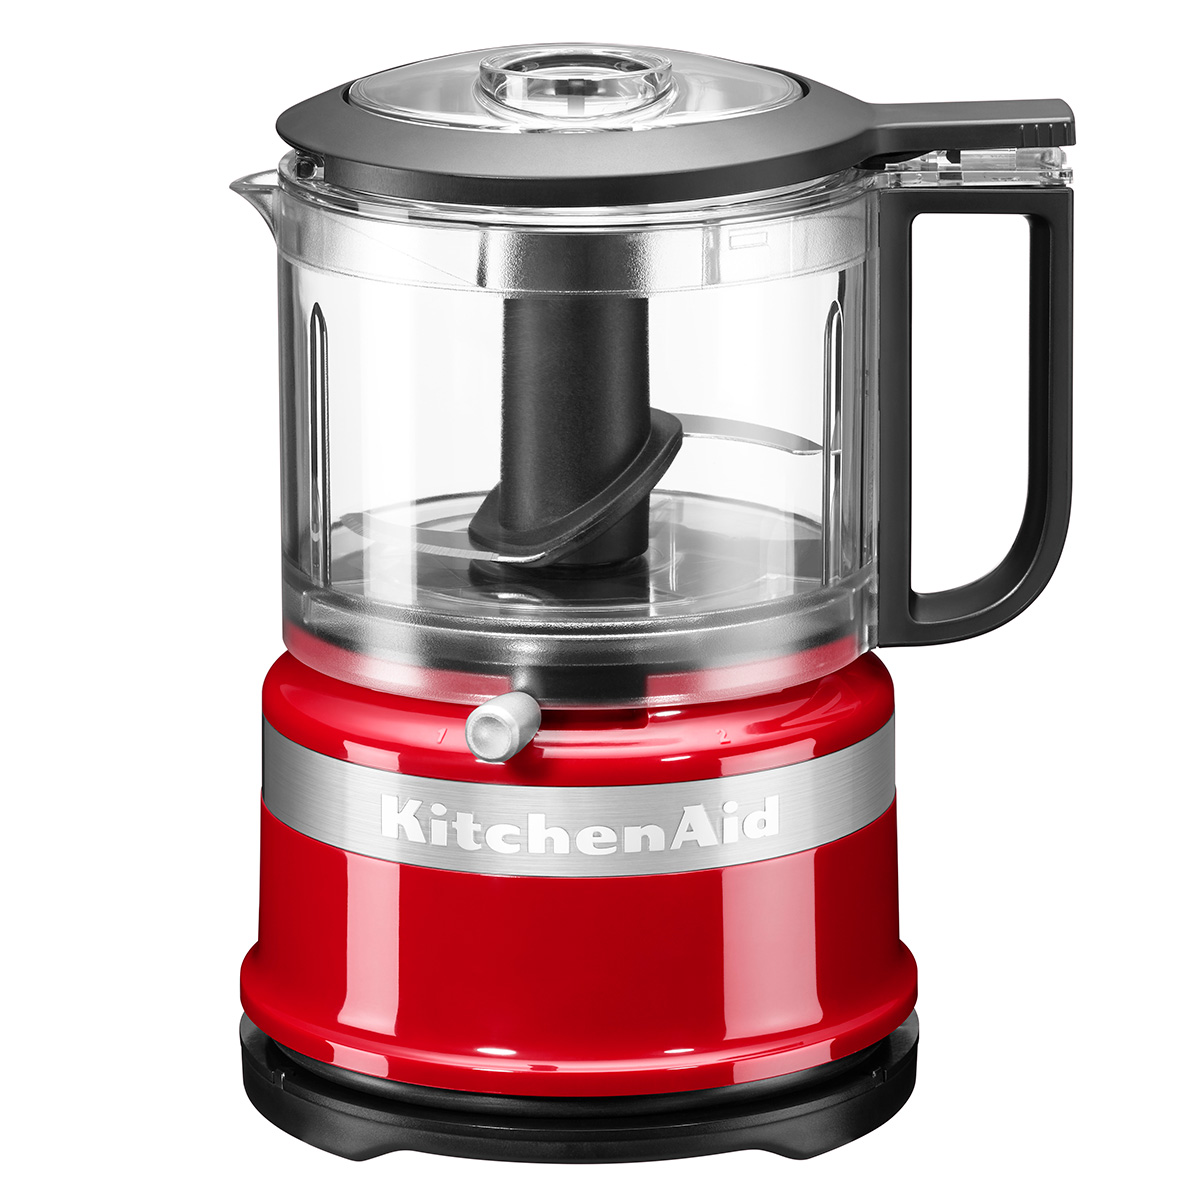 KitchenAid mini-foodprocessor - Classic - Rød